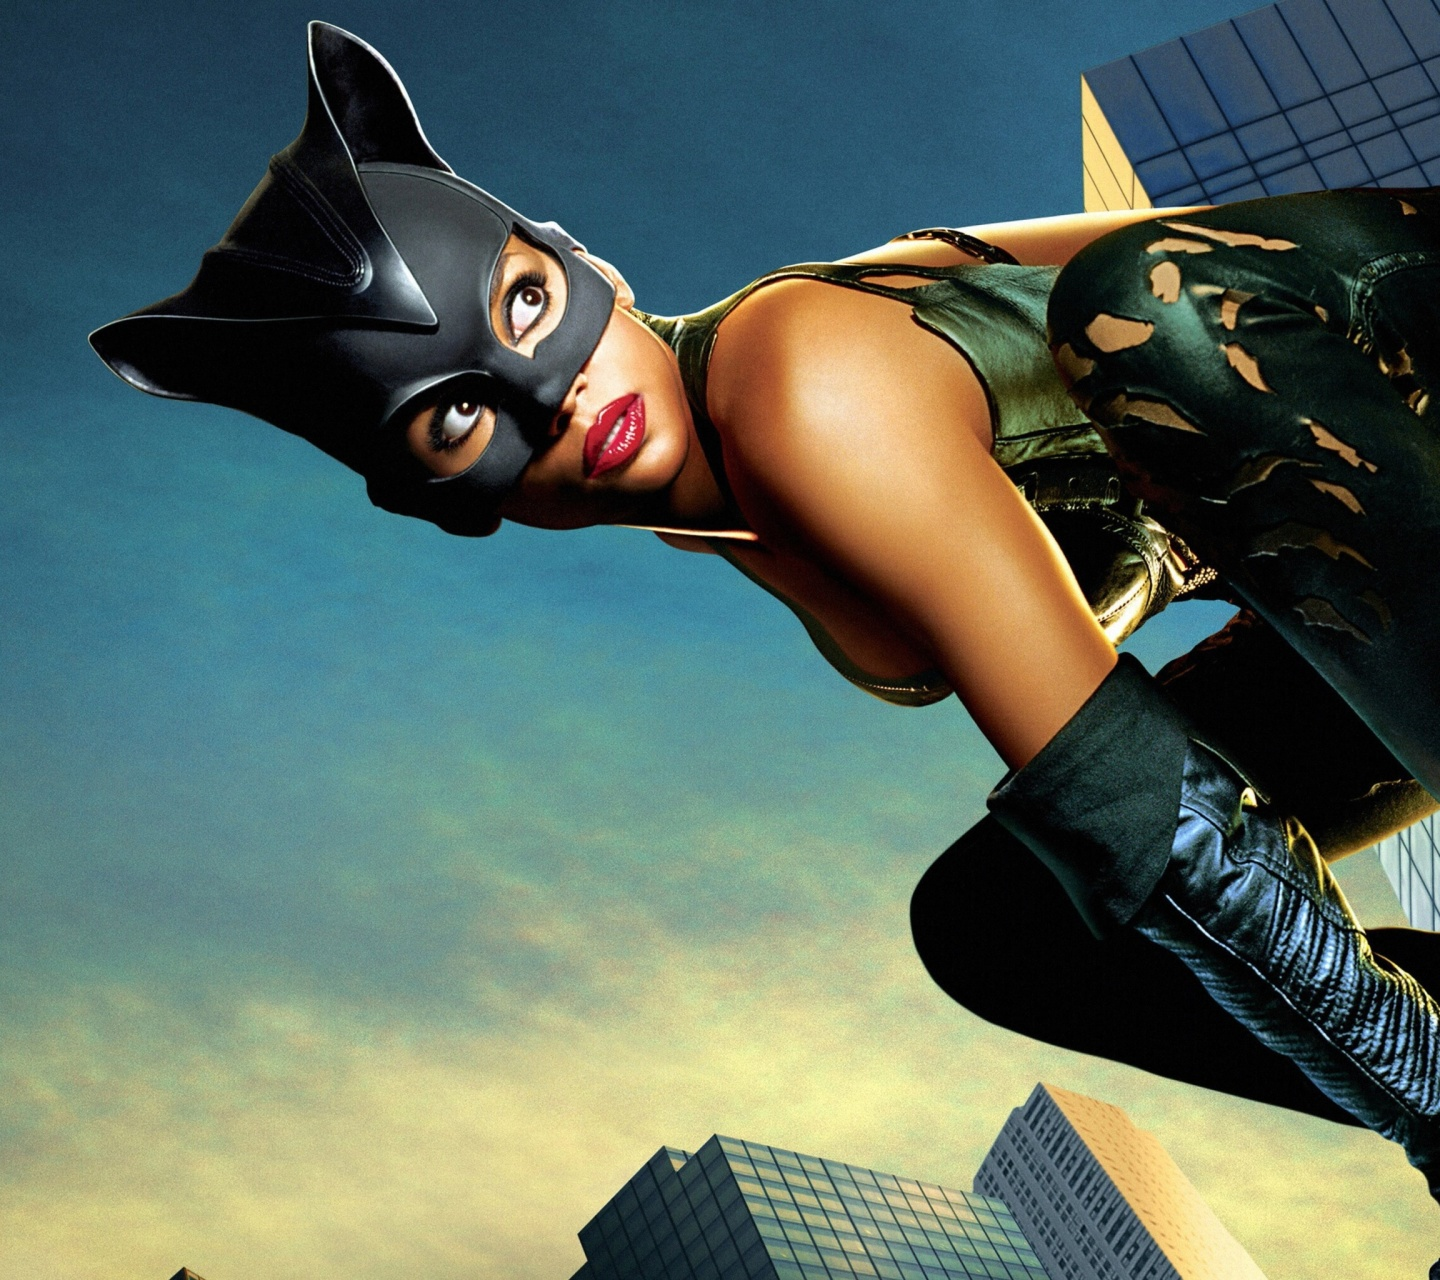 Catwoman Halle Berry screenshot #1 1440x1280